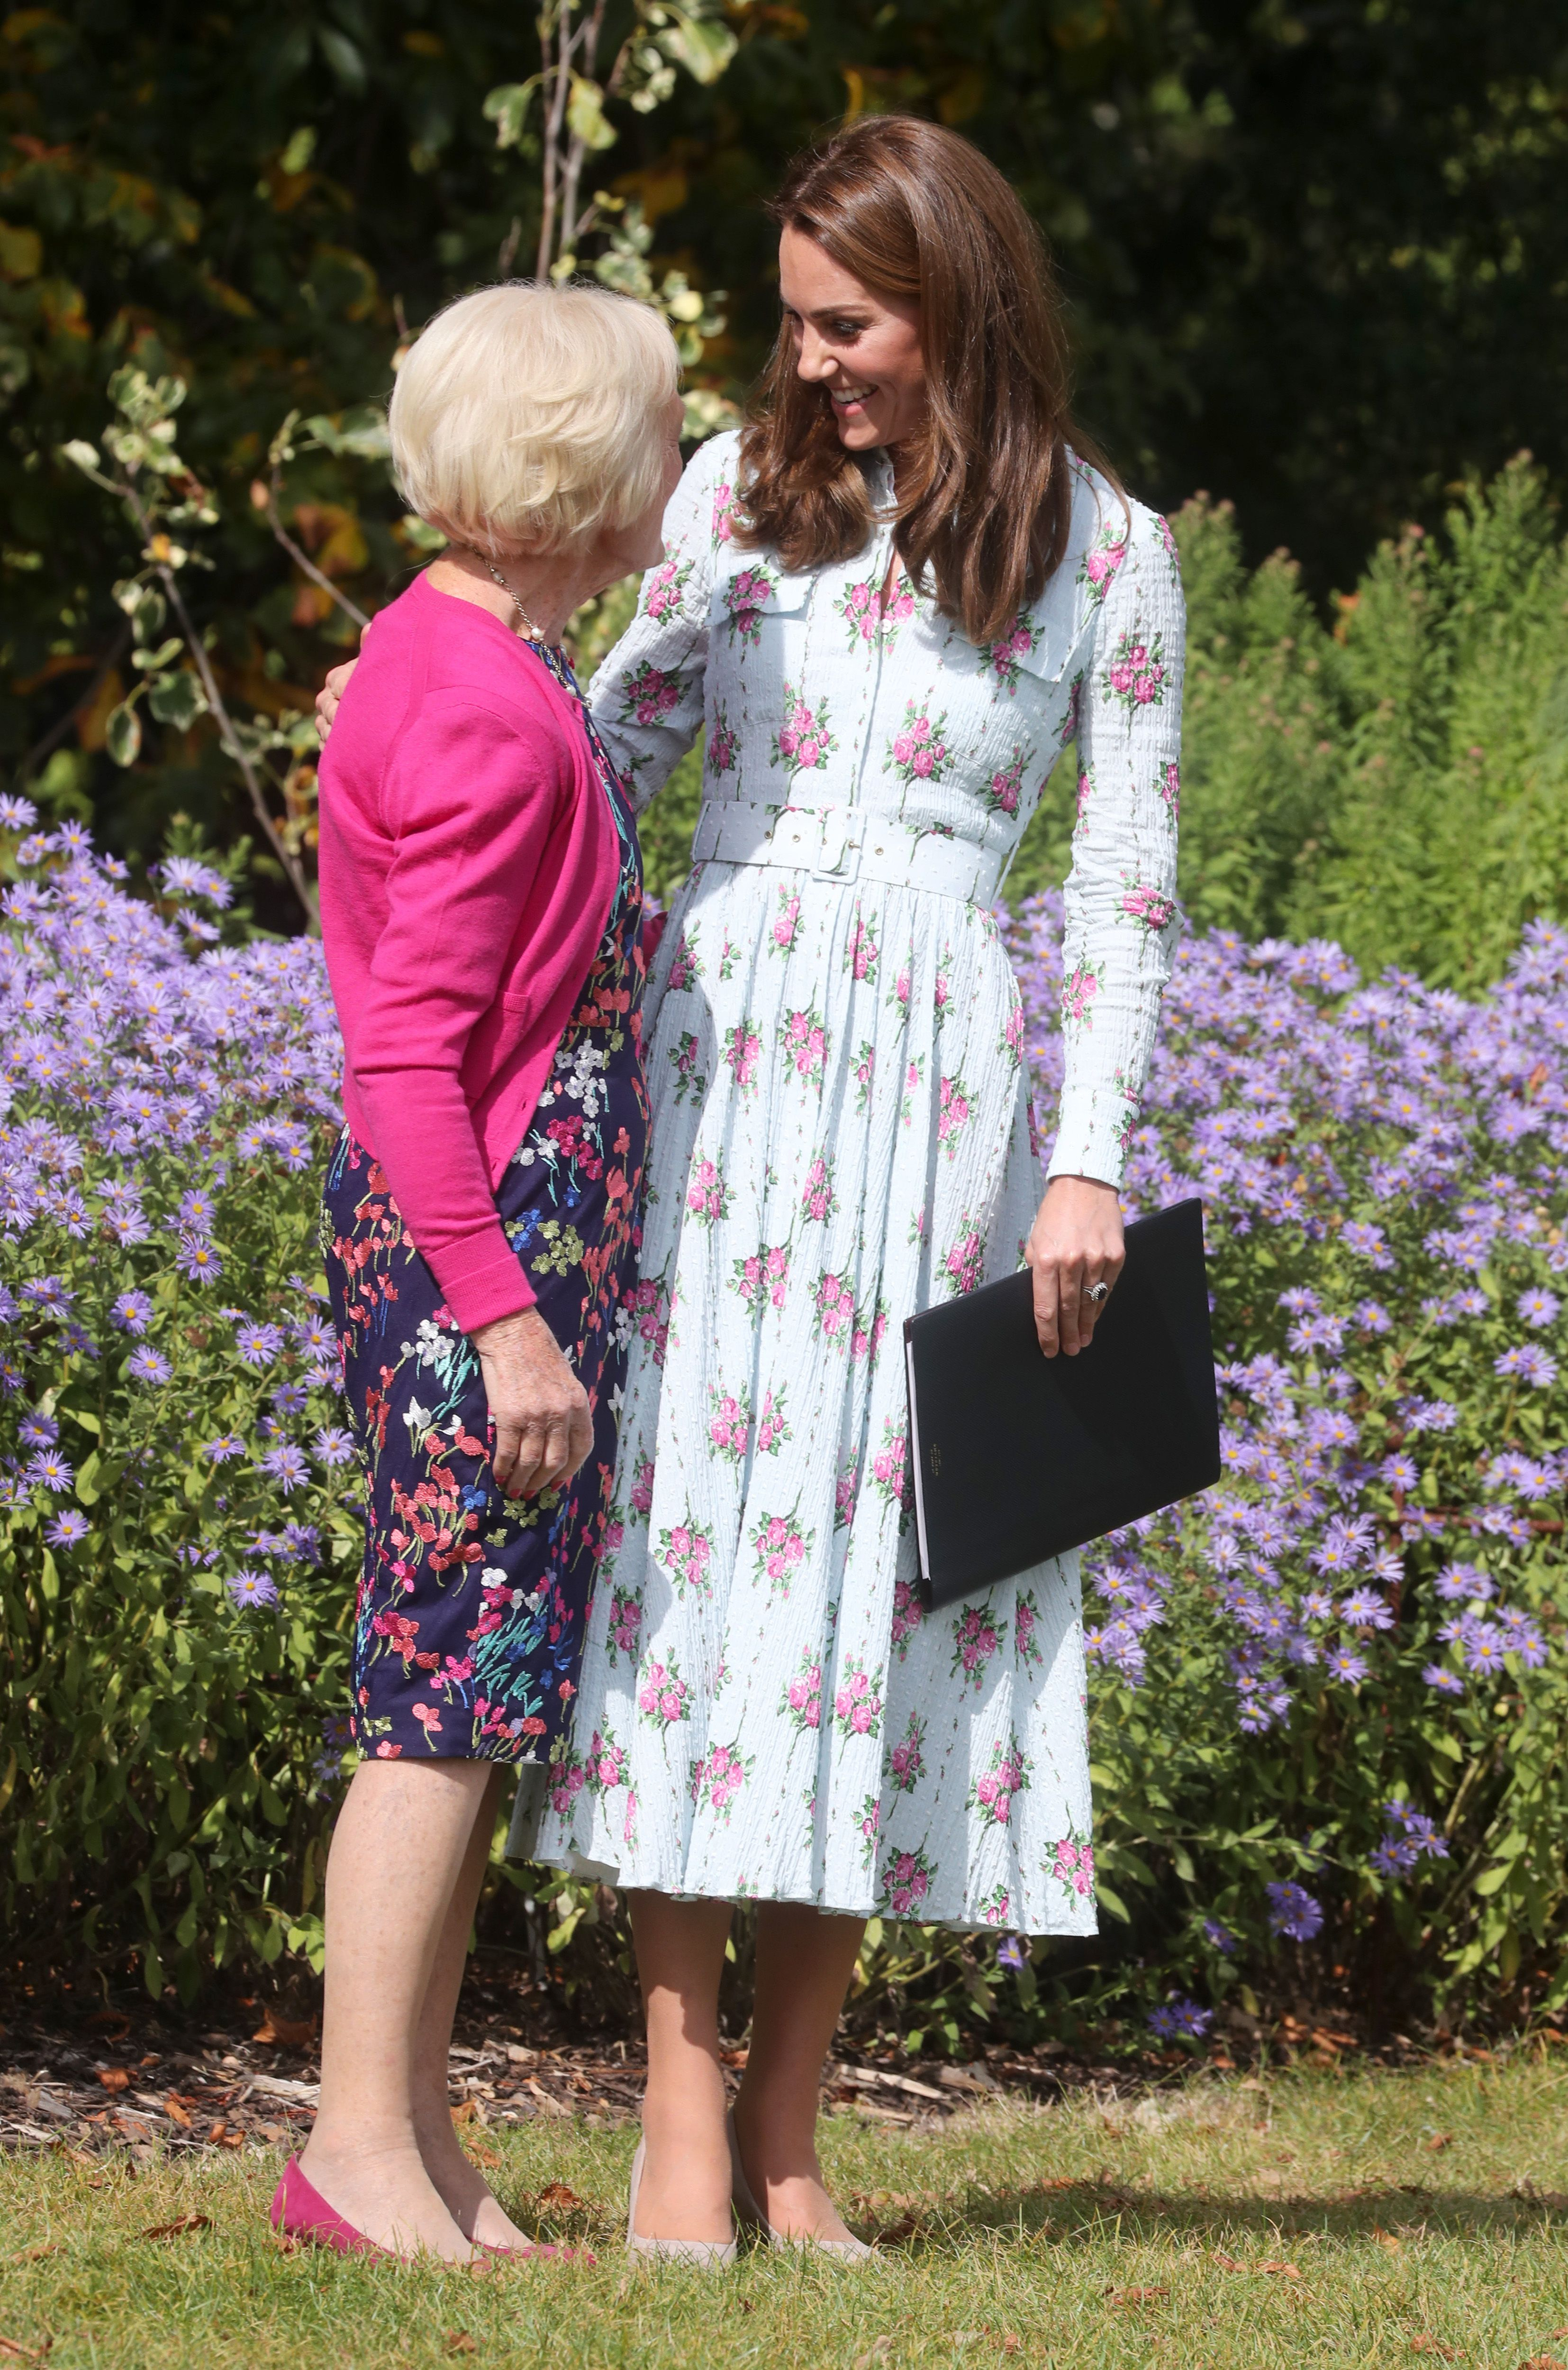 Kate Middleton and Mary Berry Just Hung Out at the Garden Kate Designed